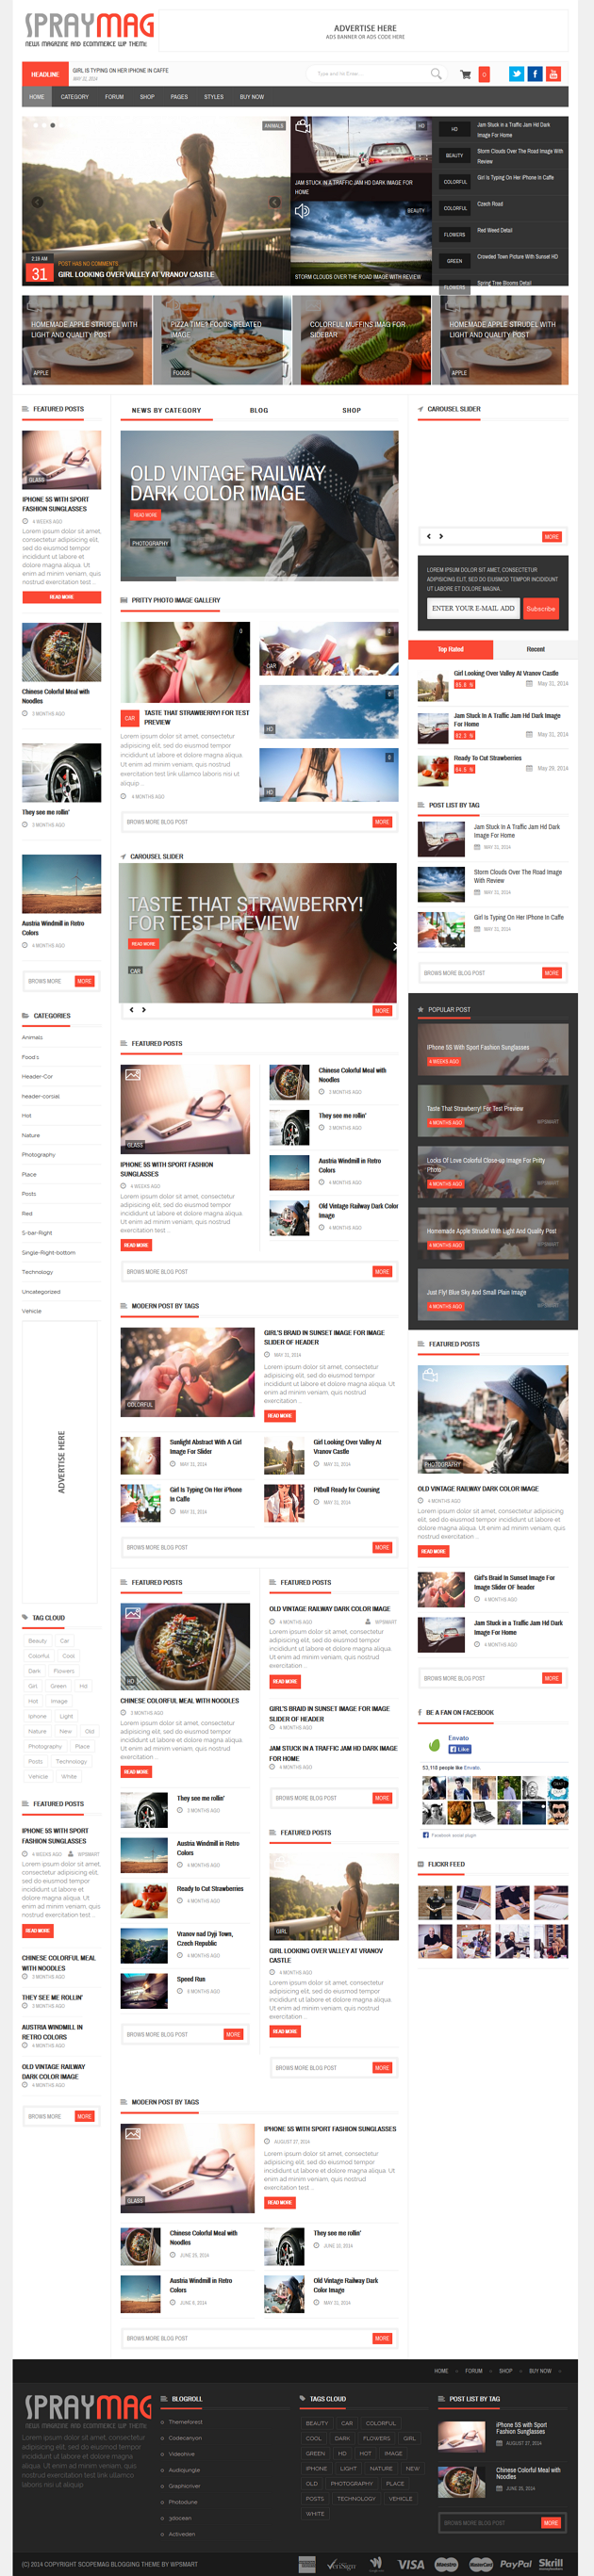 Spraymag WordPress Theme Design For Magazine Style WordPress Blog's. Review System, E Commerce S ...